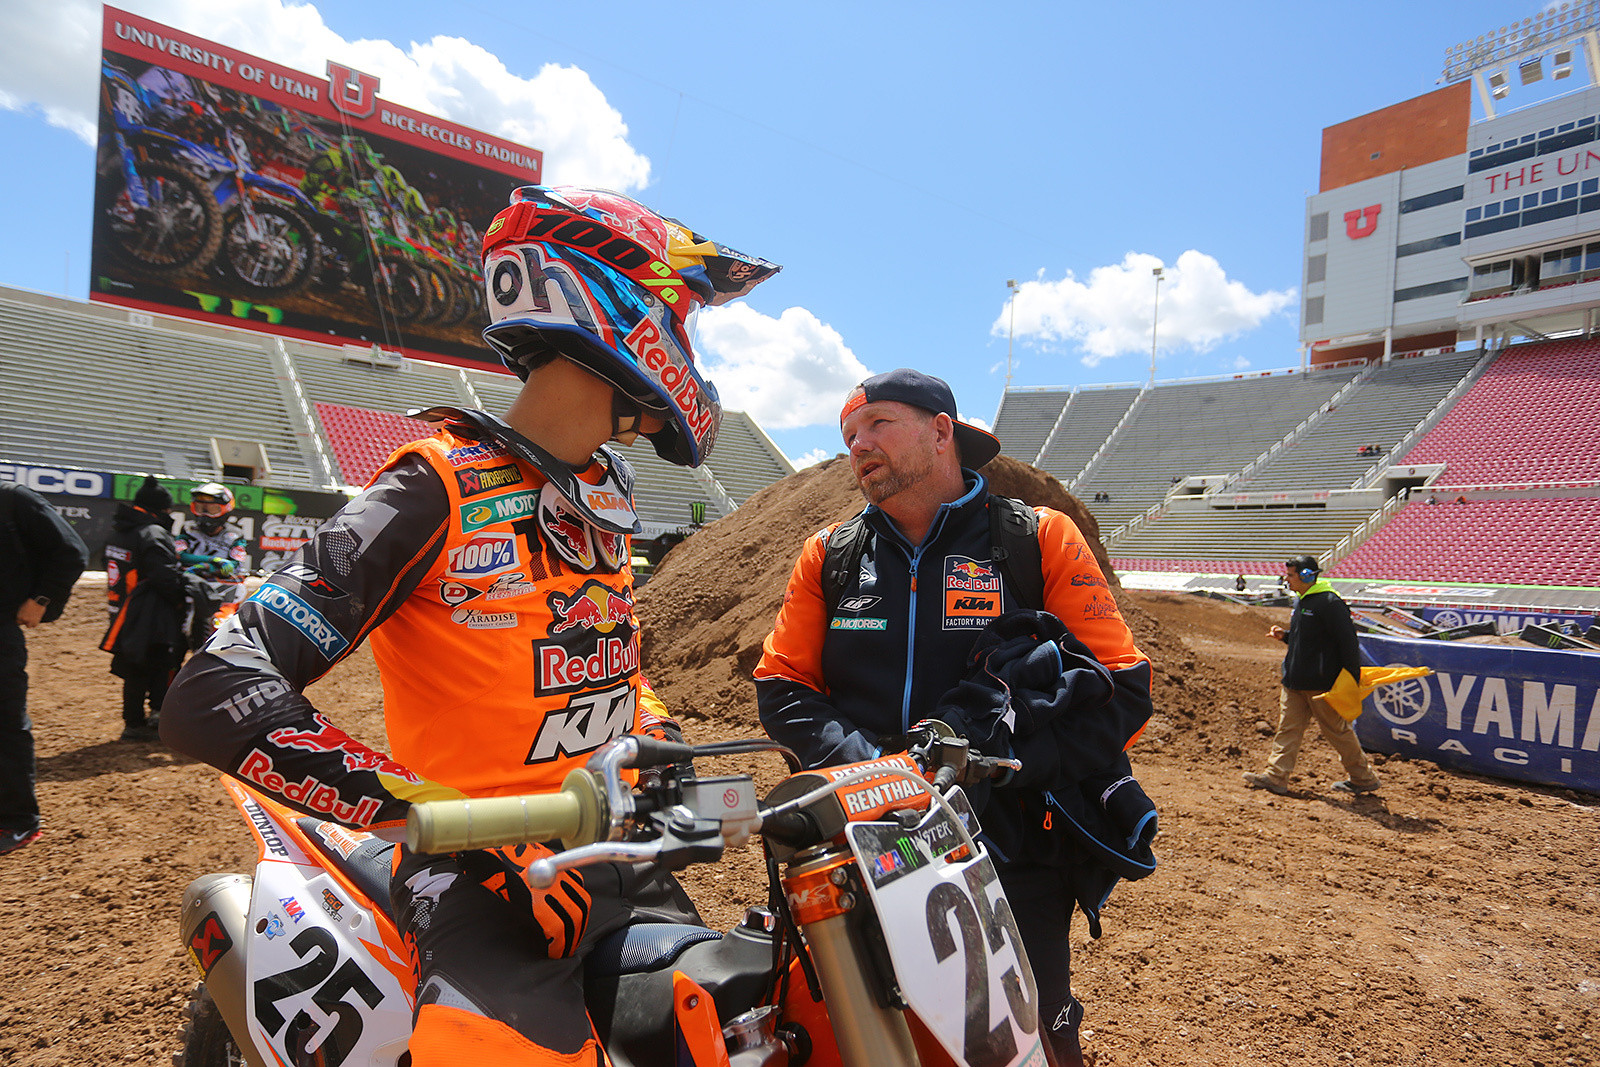 Marvin Musquin and Frankie Latham - Vital MX Pit Bits: Salt Lake City - Motocross Pictures - Vital MX